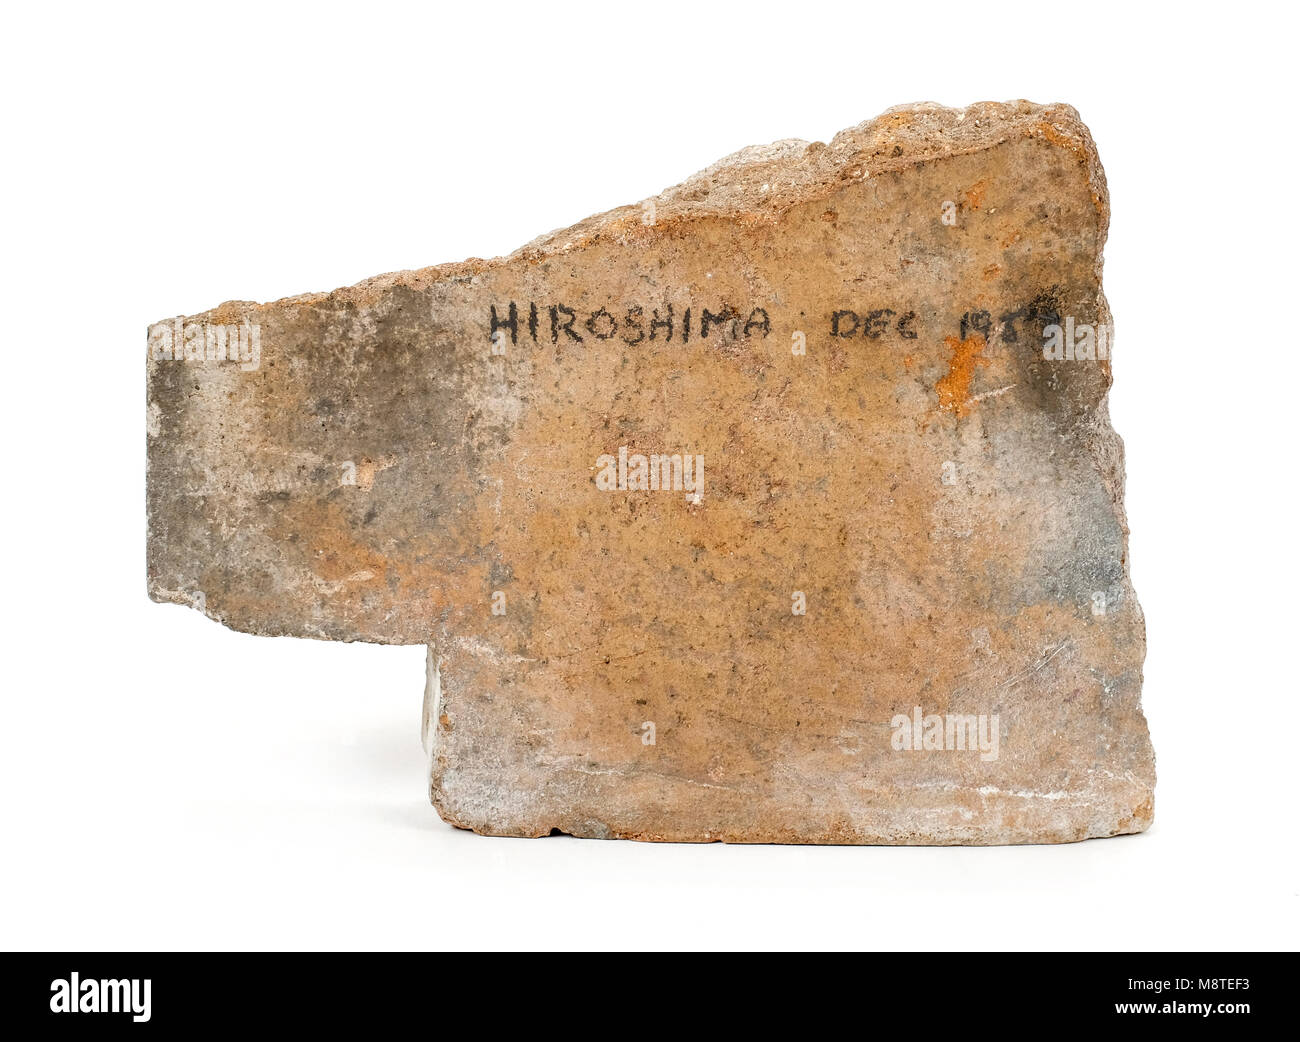 Roof tile from a building in Hiroshima, Japan, brought back in 1953, and showing a heat mark caused by the intense - Stock Image